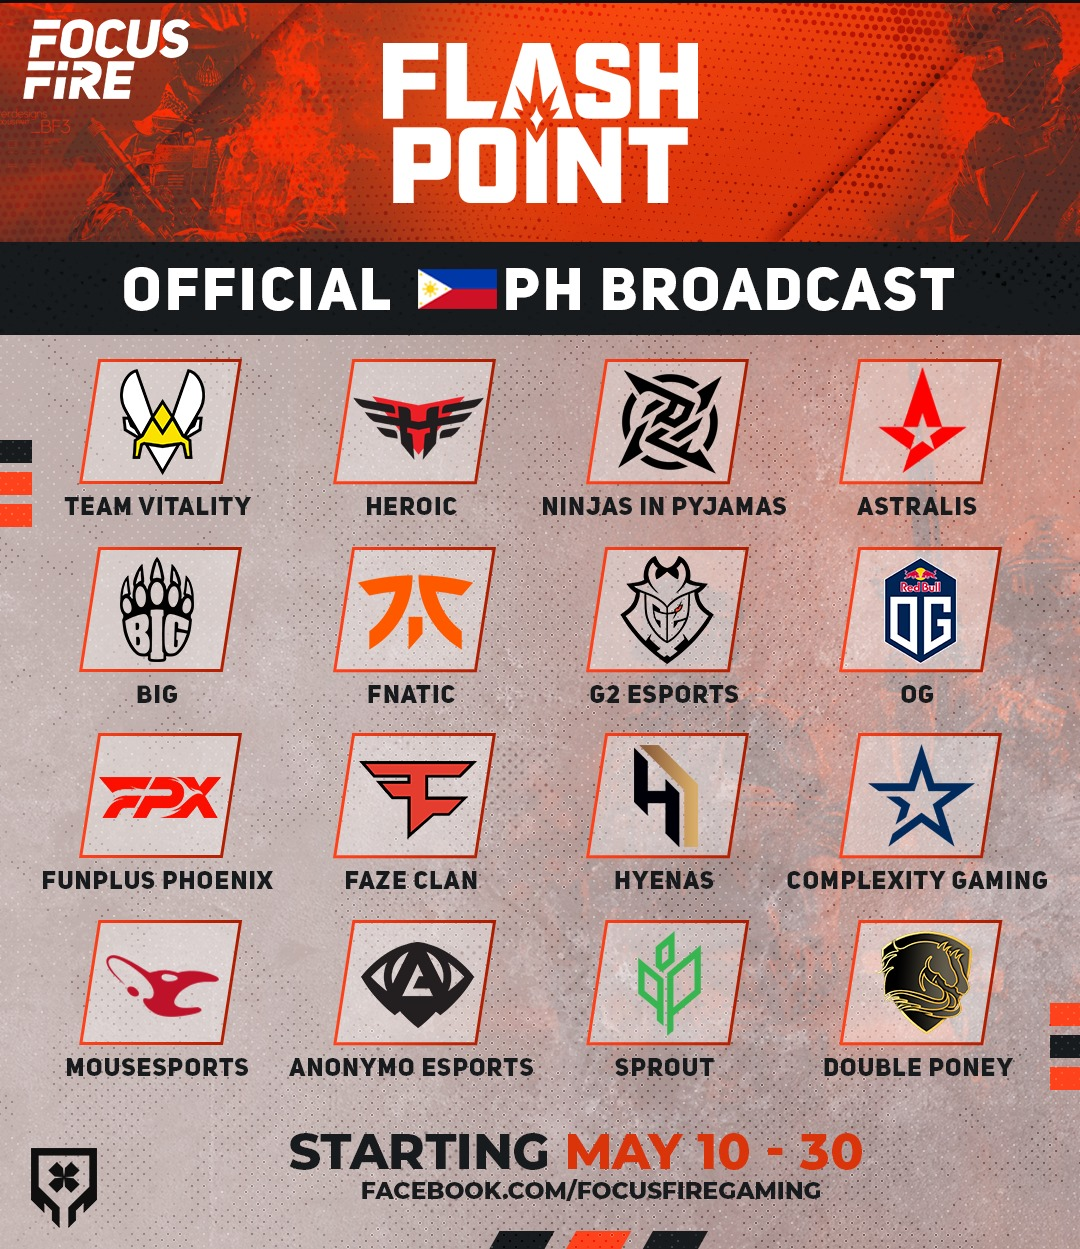 LuponWXC Secures Broadcast Rights for #CSGO's Flashpoint Season 3